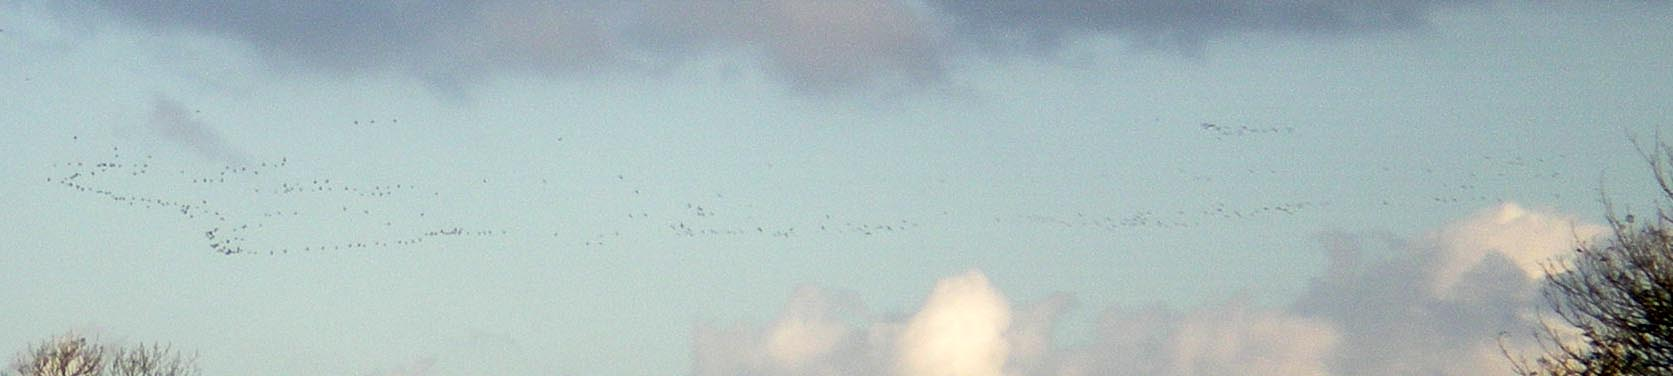 geese-flying.jpg